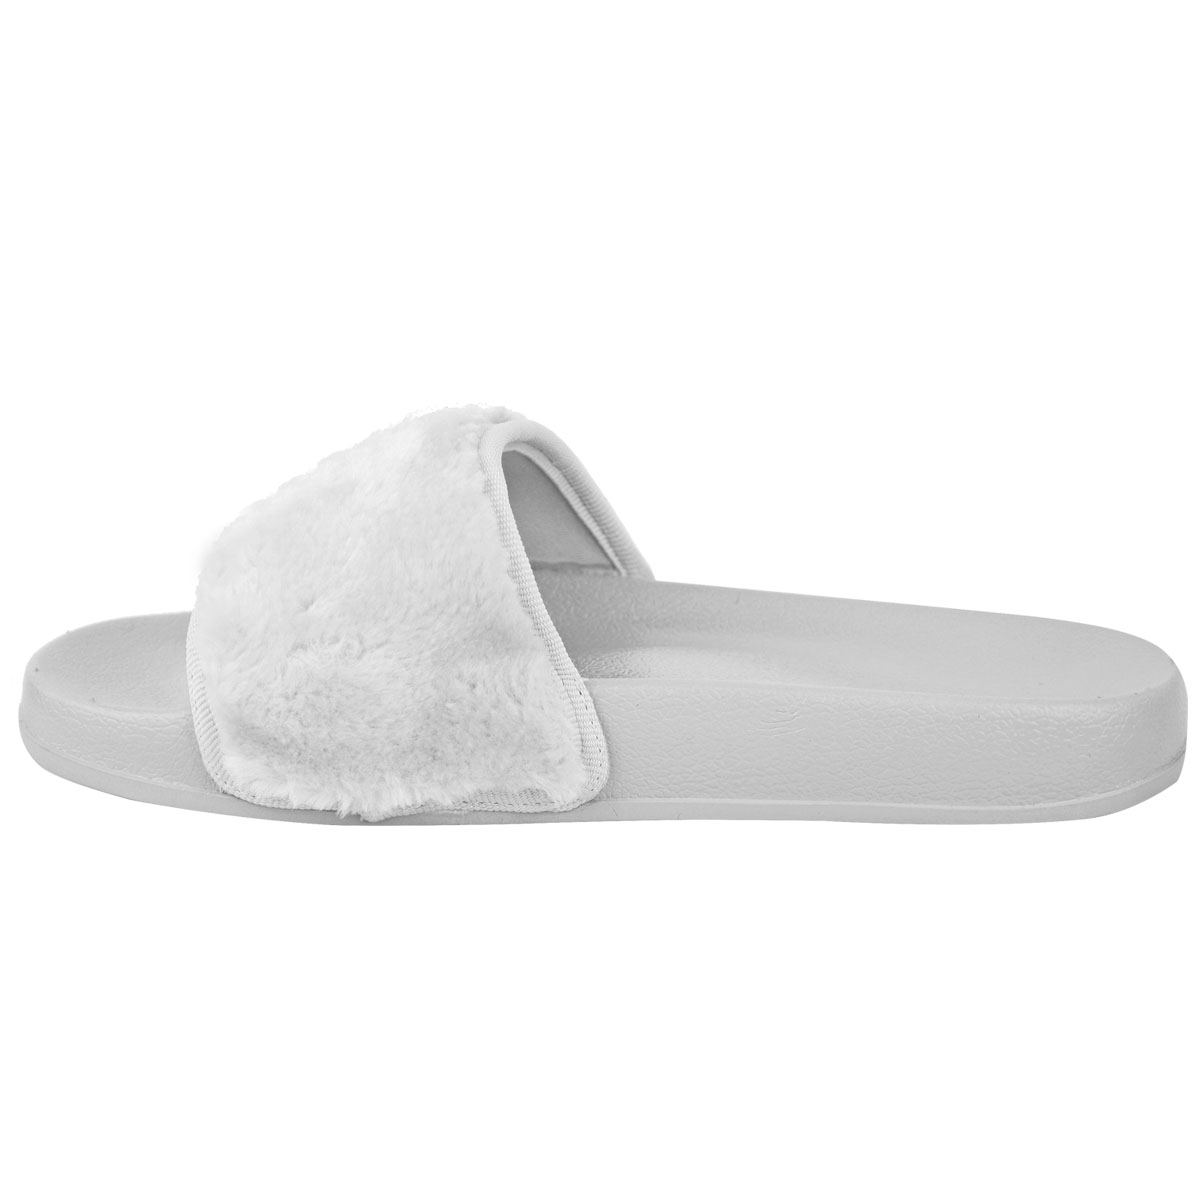 db3e94c4704ac2 Womens Ladies Flat Comfy Faux Fur Trim Rubber Sliders Flip Flops ...